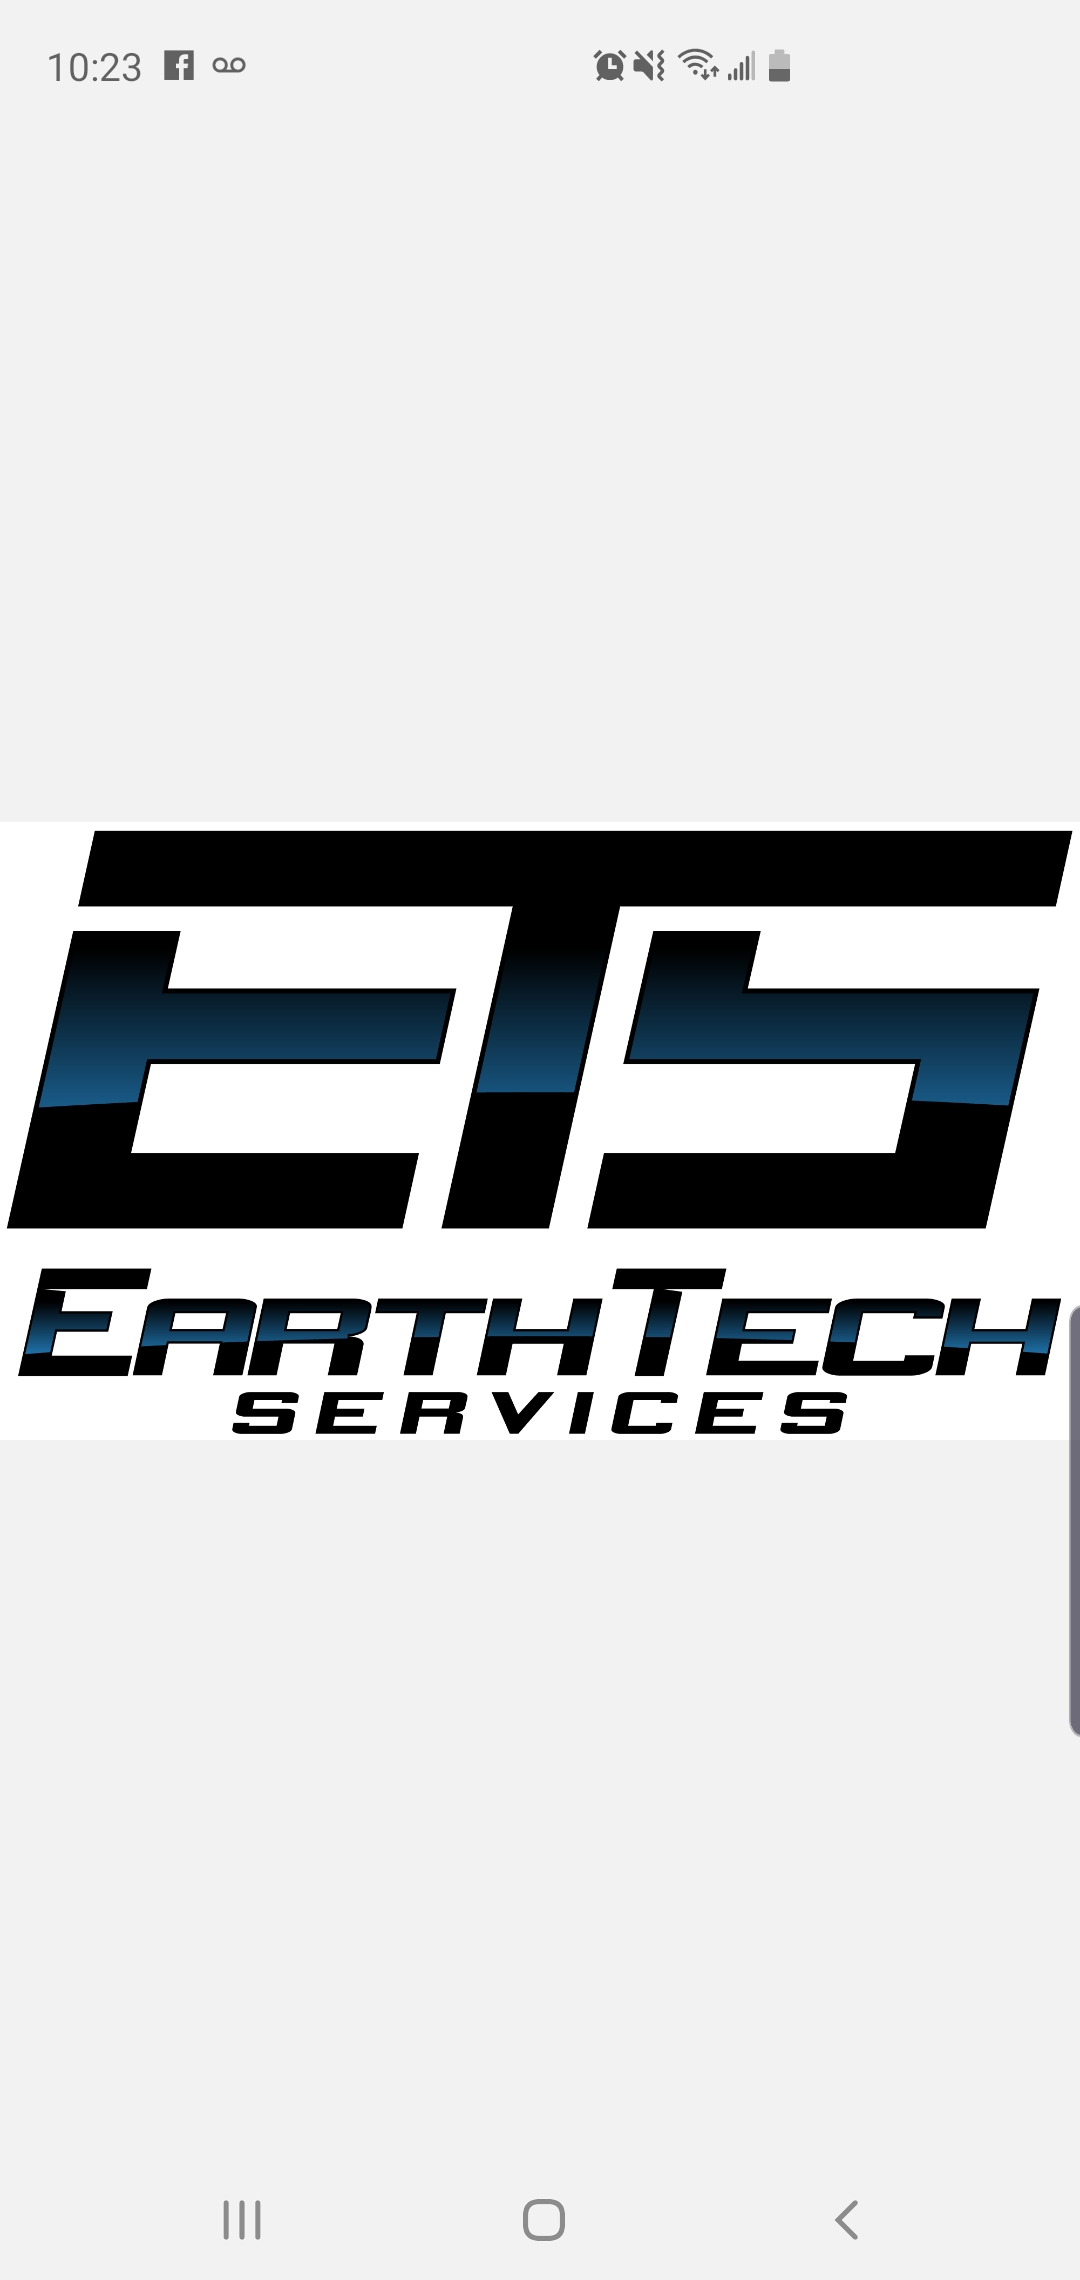 Earthtech Services | Official License Records and Permit History